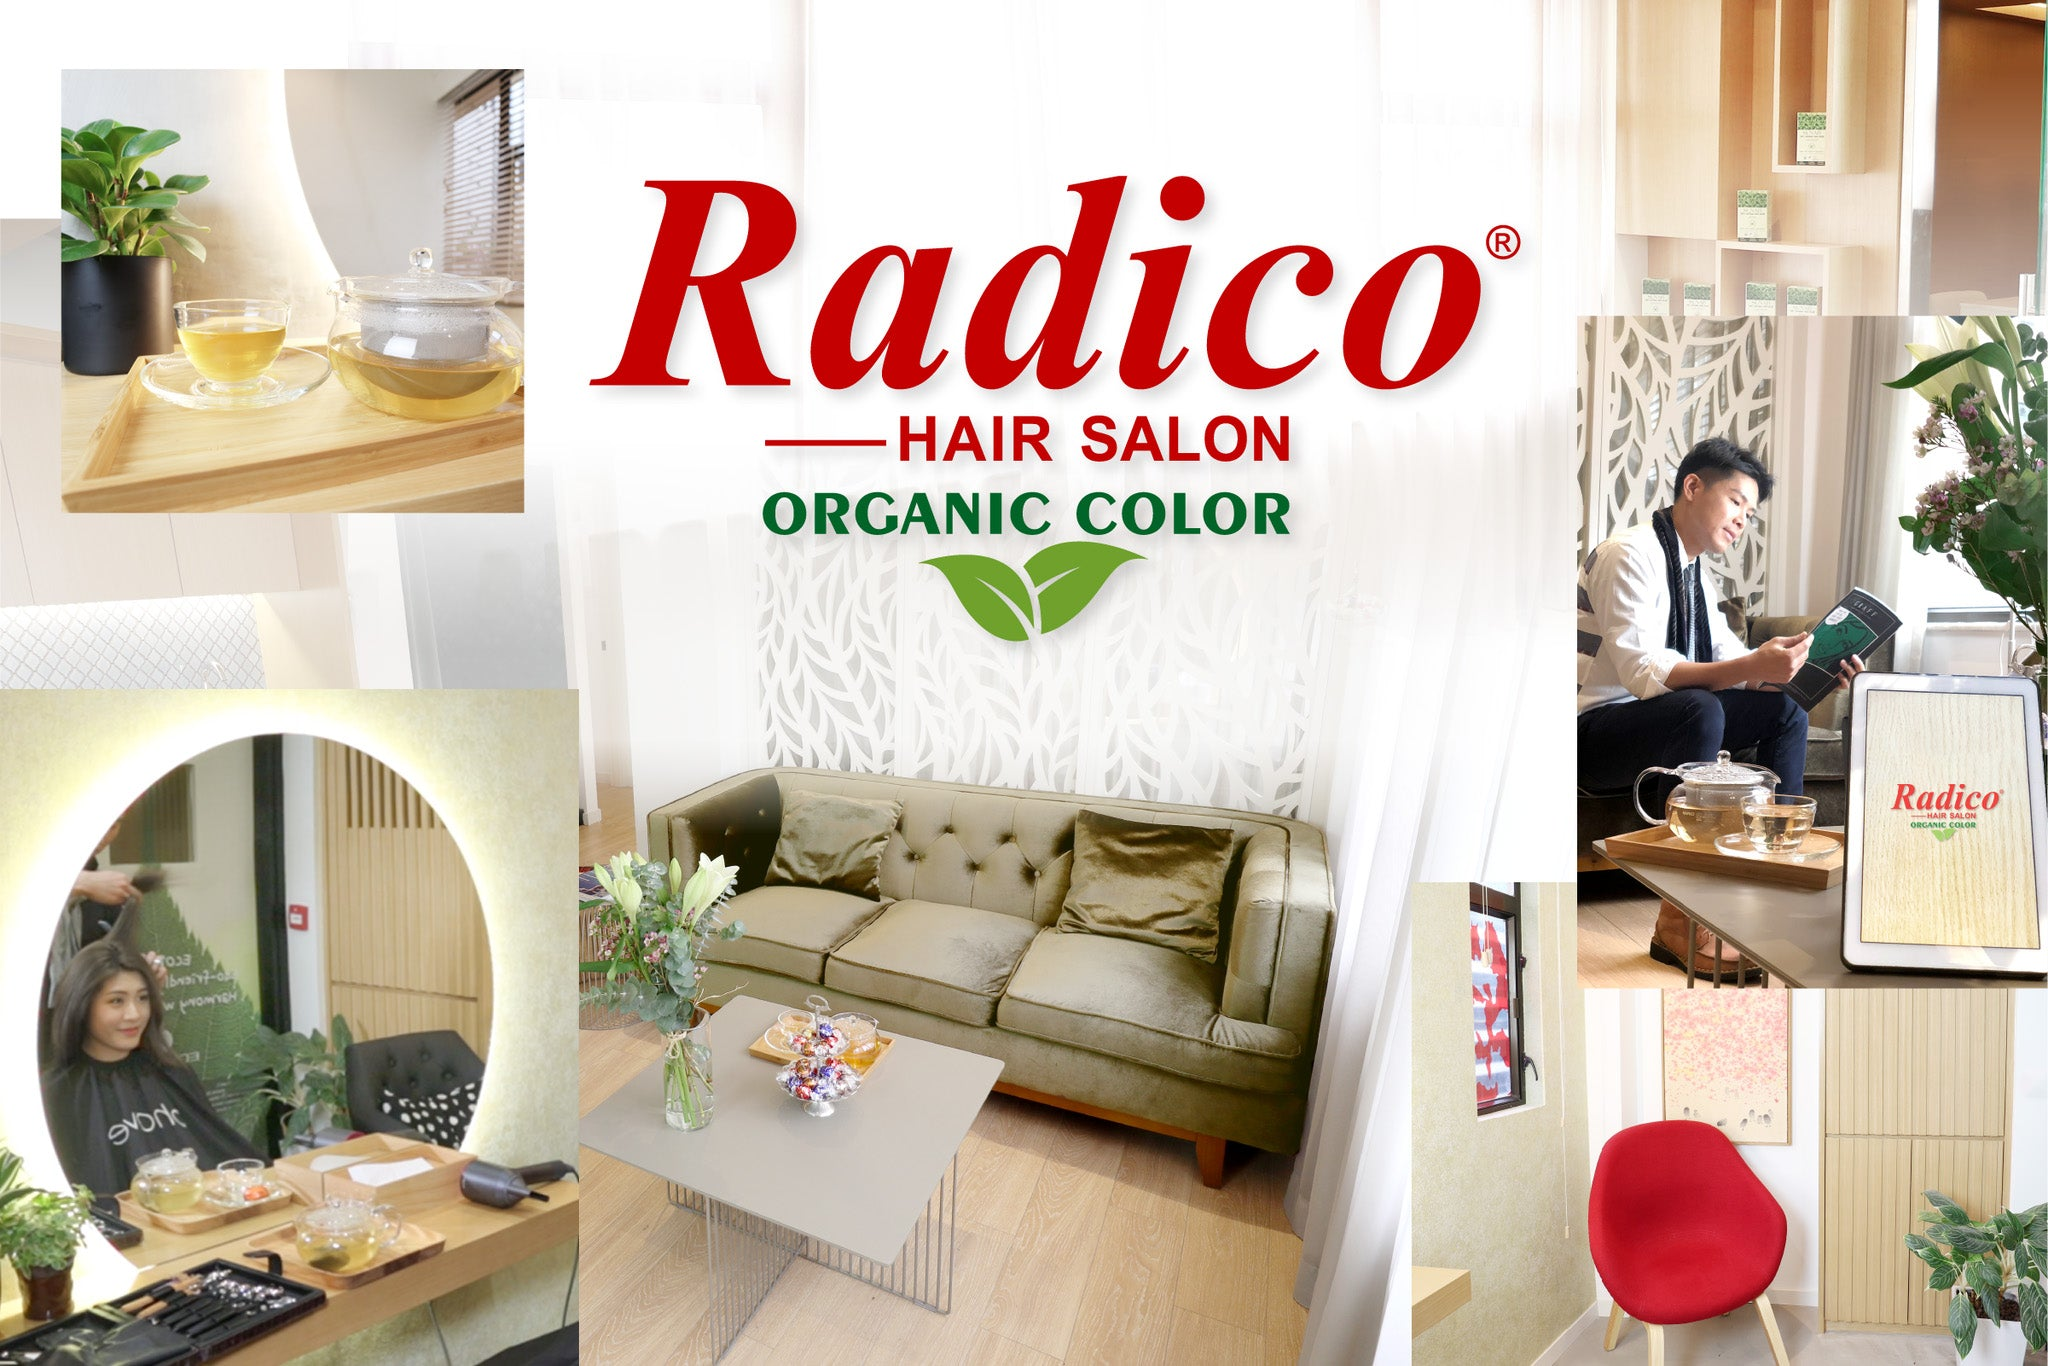 salon Radico Hair Salon 有機染髮中心